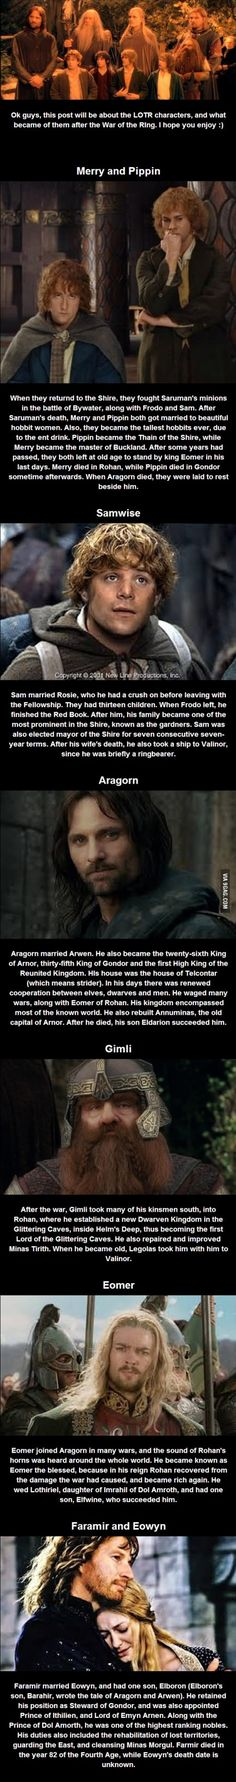 What happened to the LOTR characters after the movies?